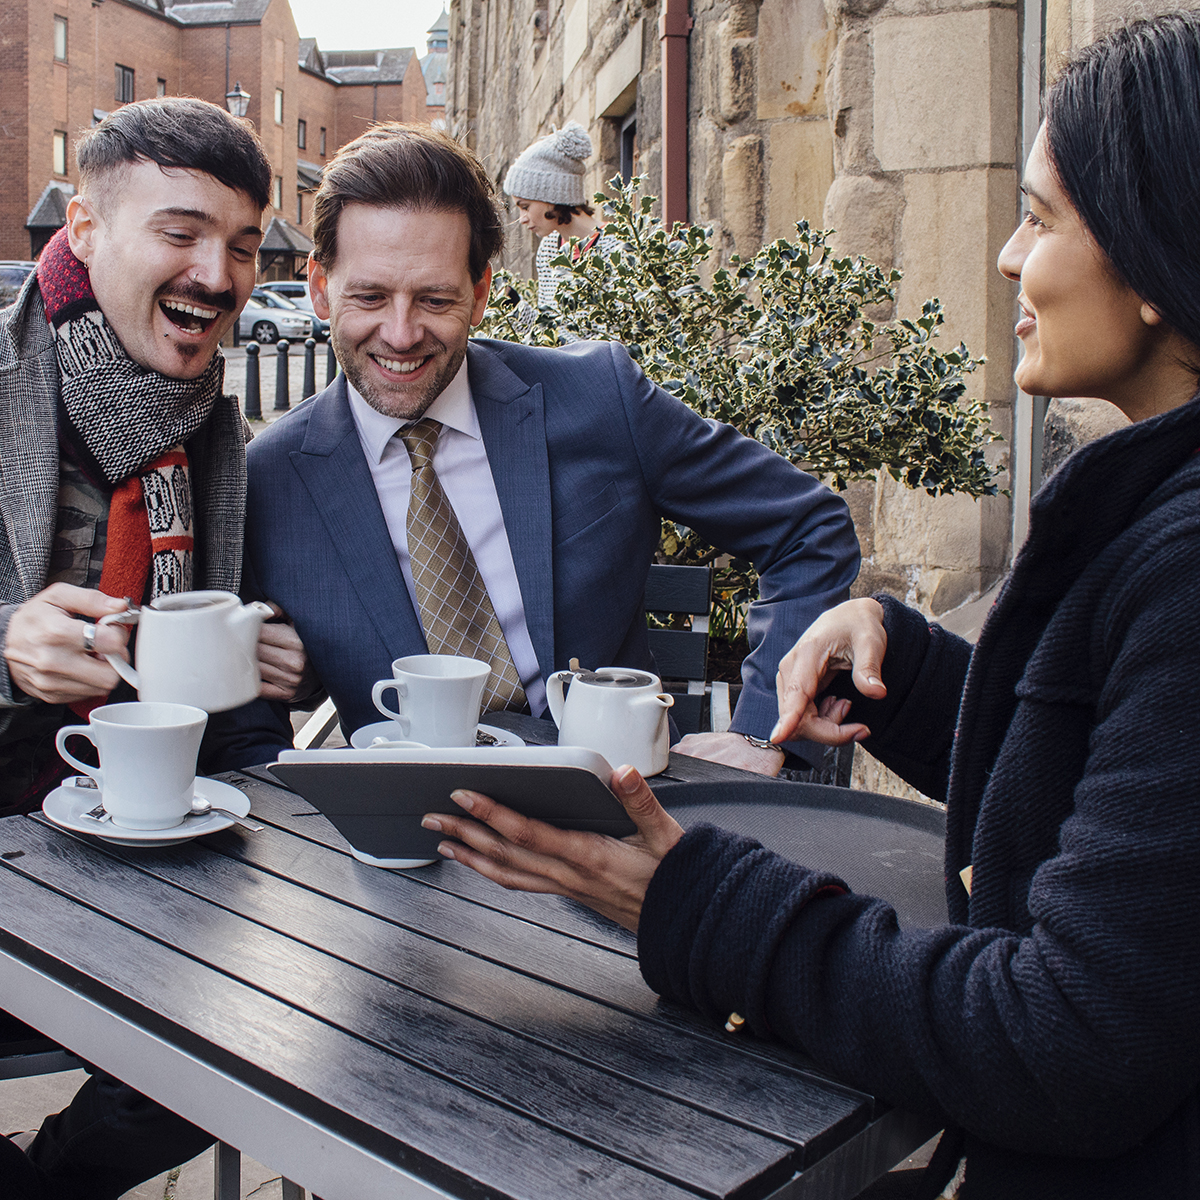 Happy couple are sitting with a financial advisor at a cafe